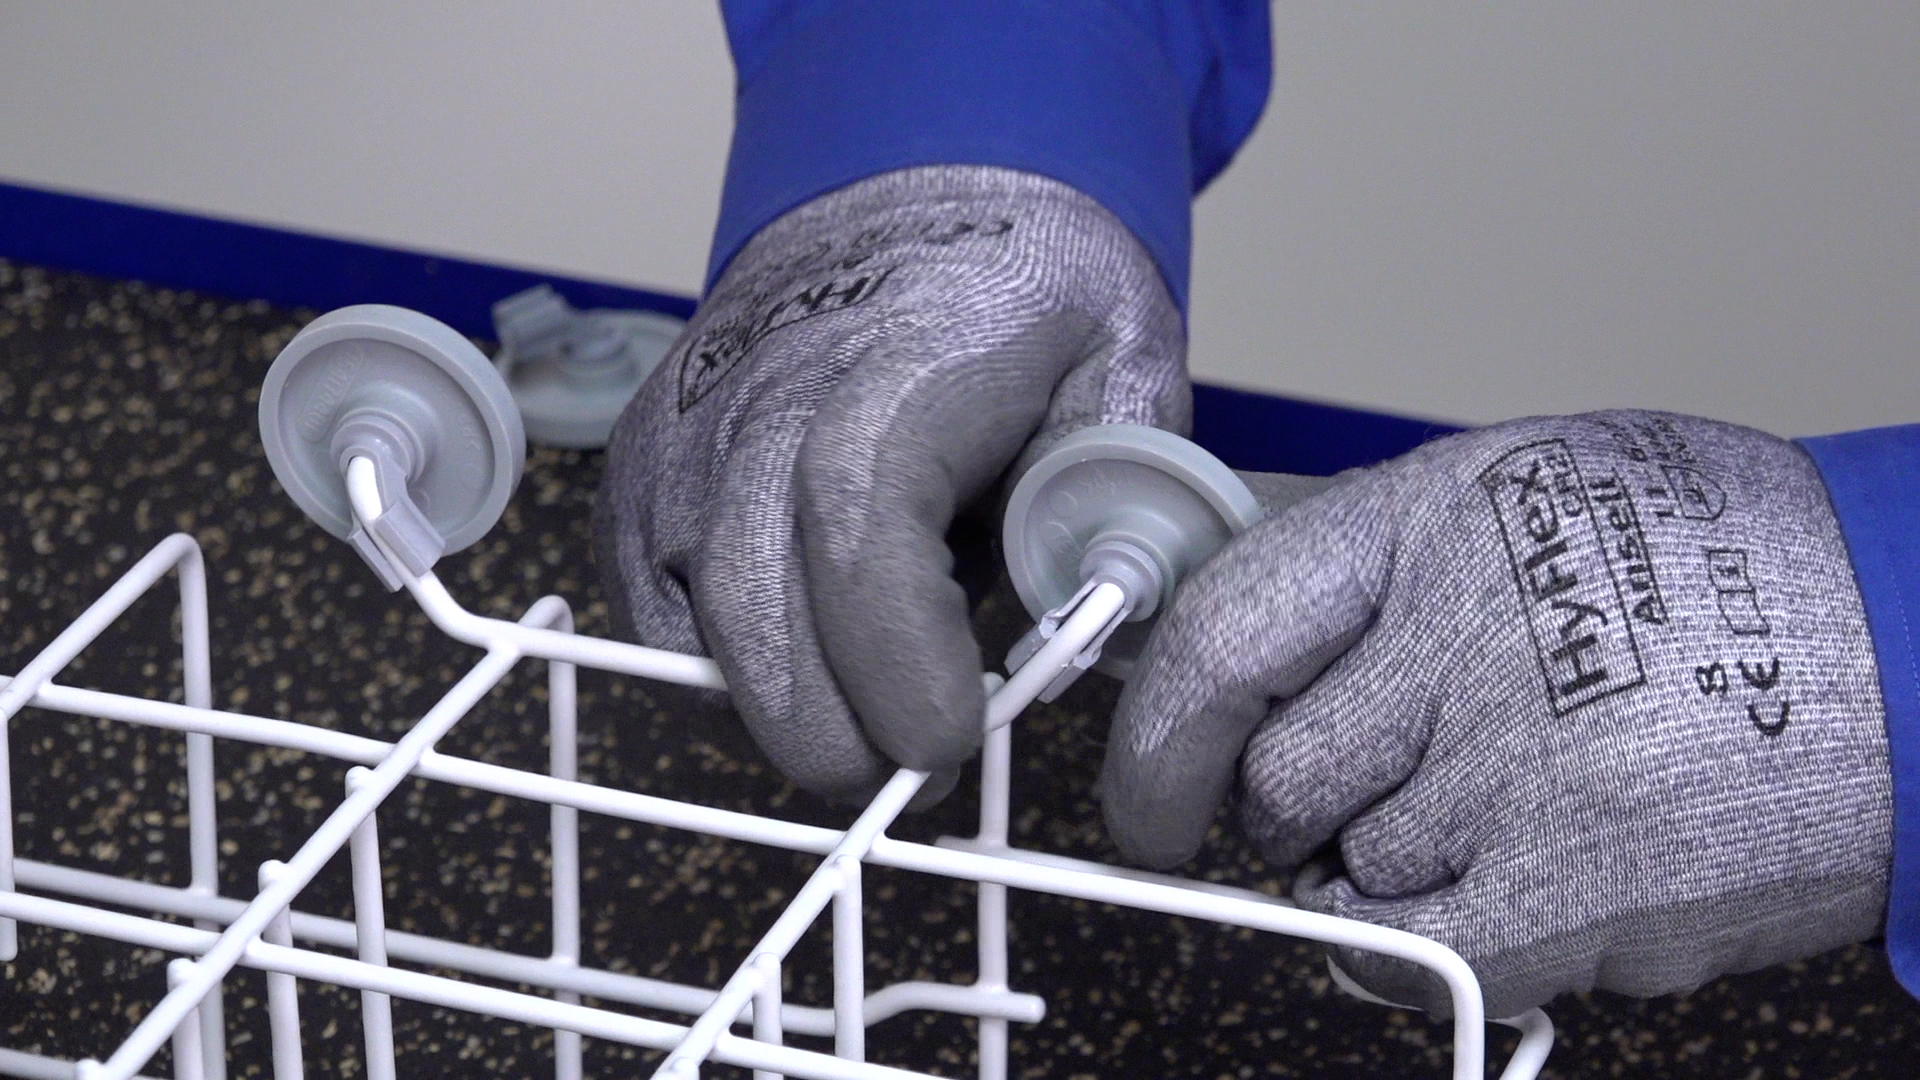 Common dishwasher problems - stops mid-cycle | Symptom diagnosis